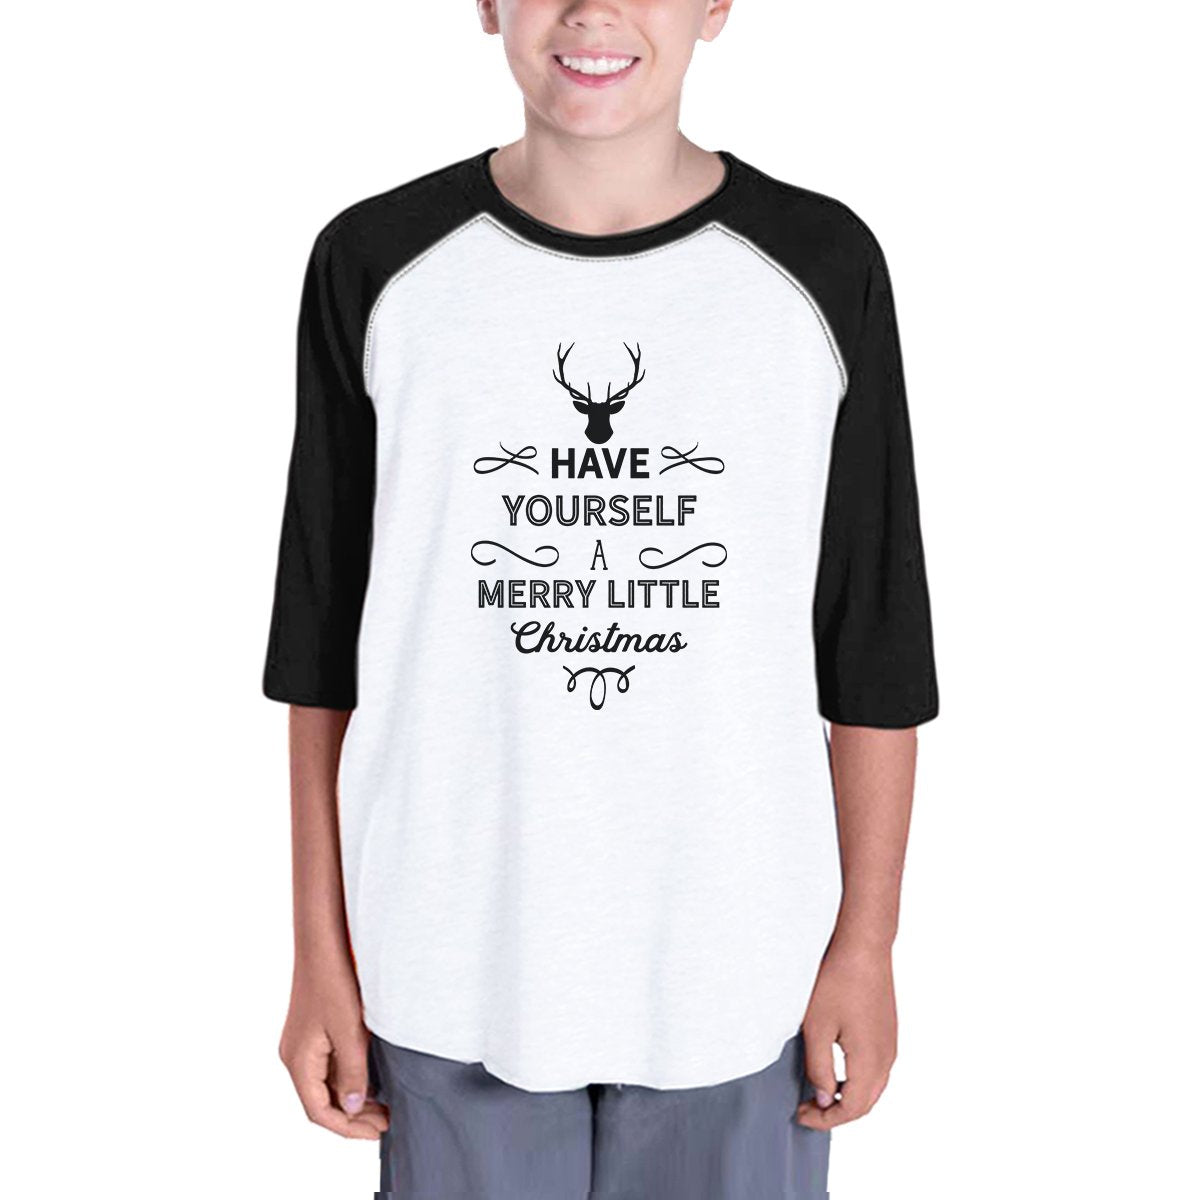 Have Yourself A Merry Little Christmas Kids Black And White Baseball Shirt